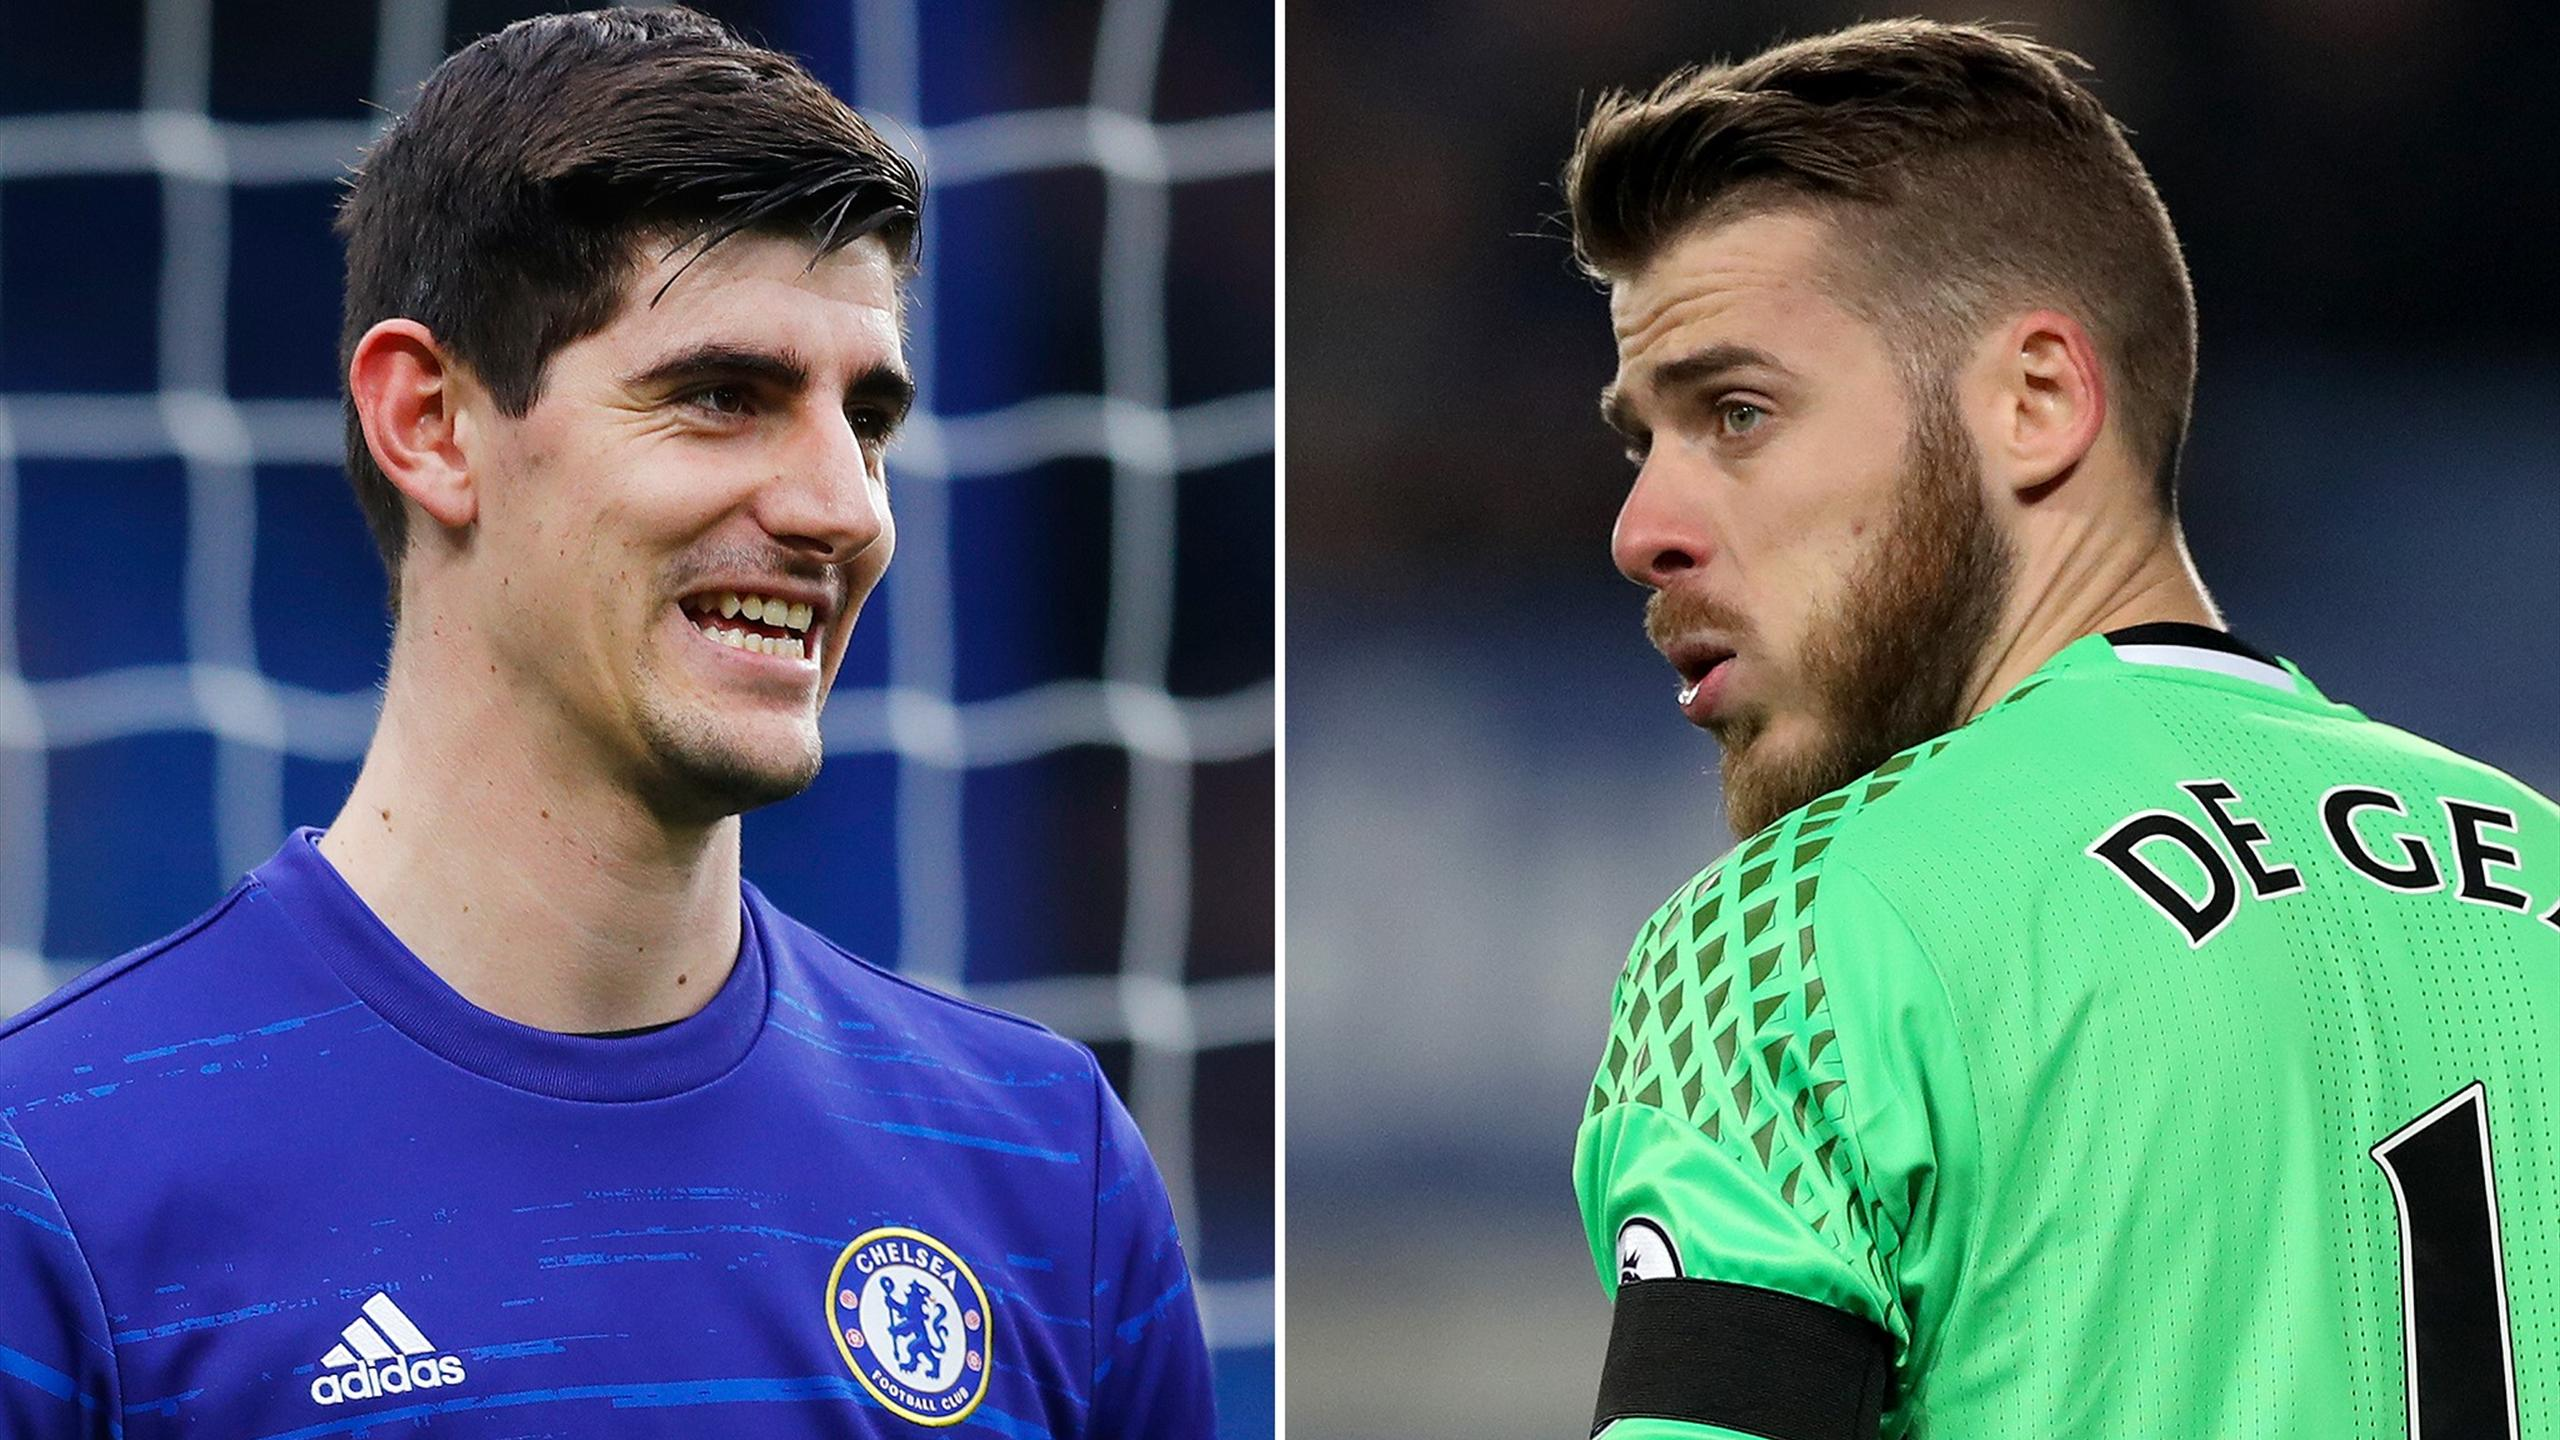 Thibaut Courtois and David De Gea are both targets of Real Madrid